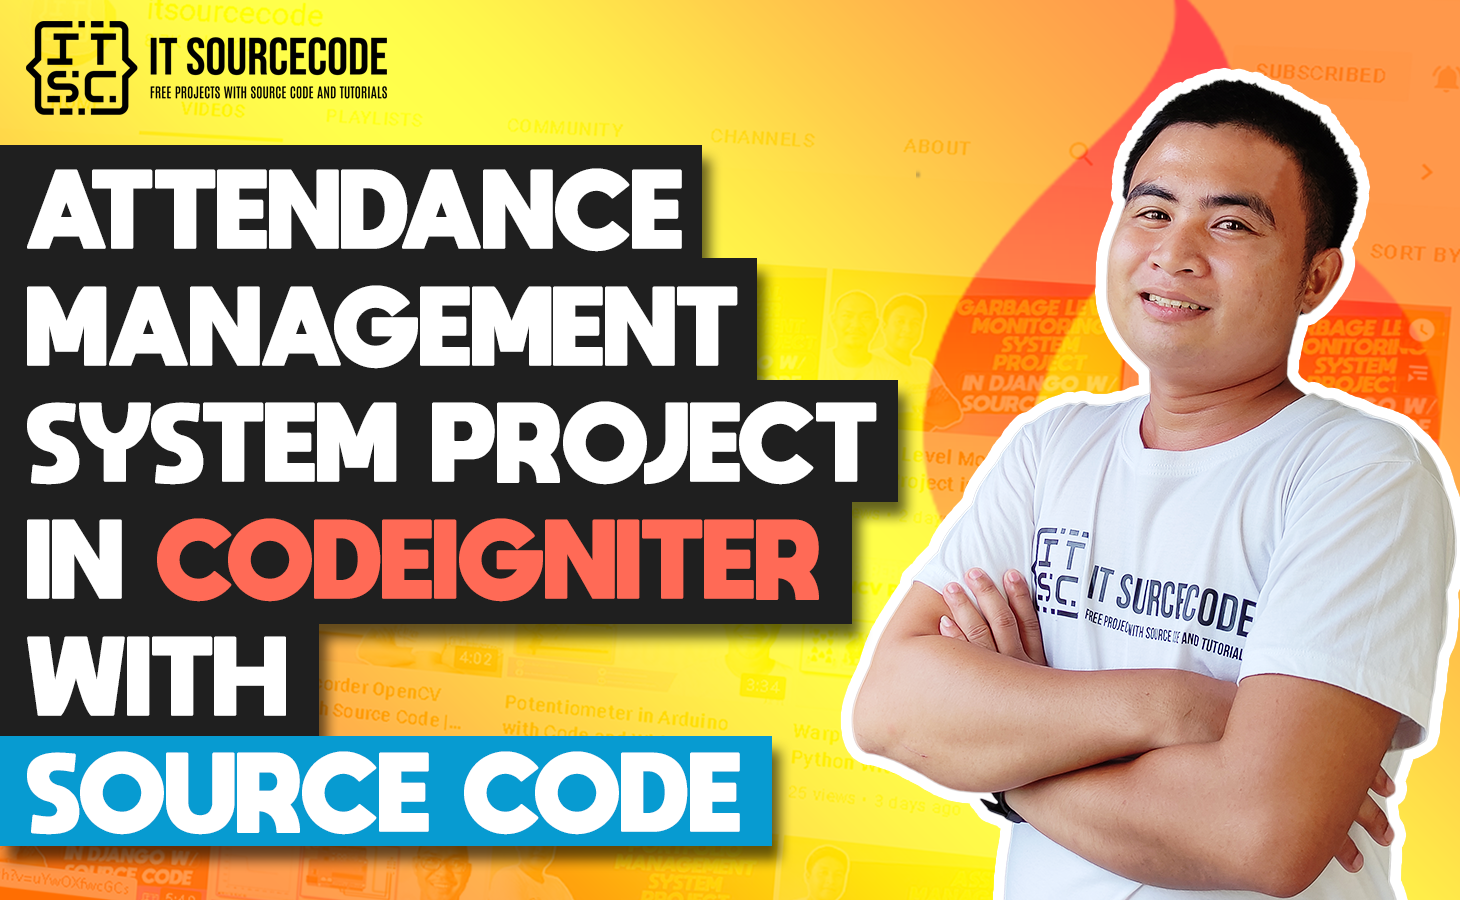 Attendance Management System In CodeIgniter With Source Code